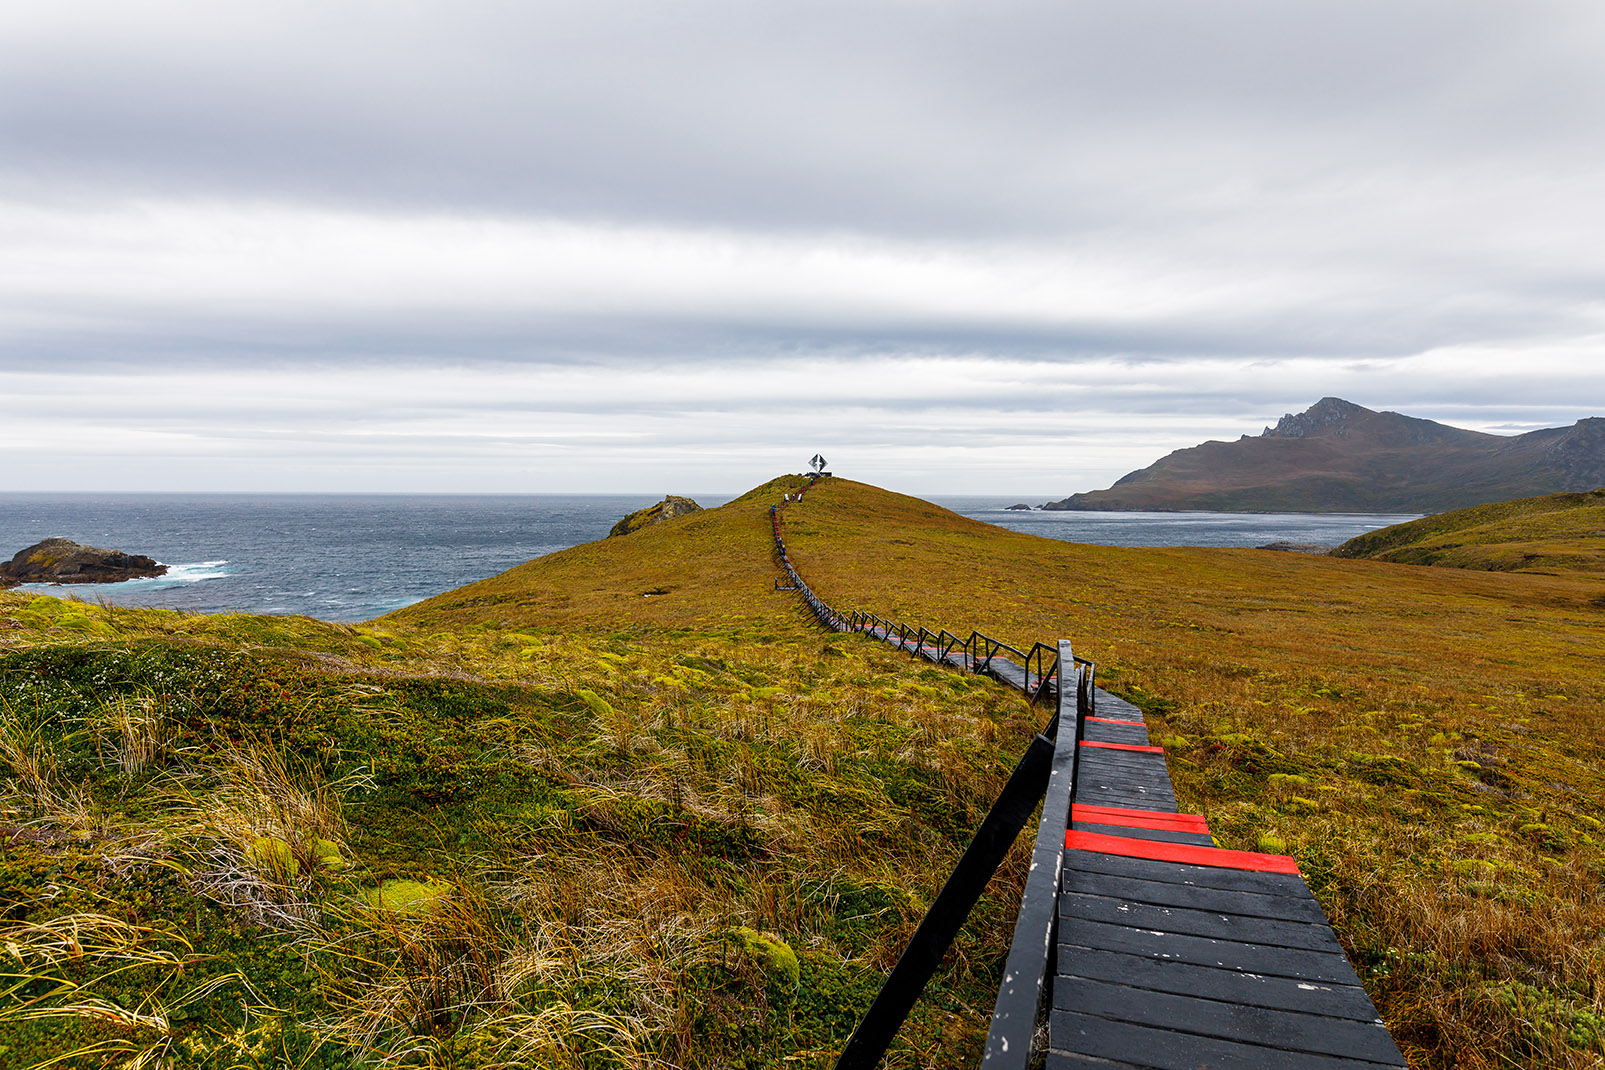 Cape Horn, on the small Hornos Island, is the southernmost headland of the Tierra del Fuego archipelago in southern Chile